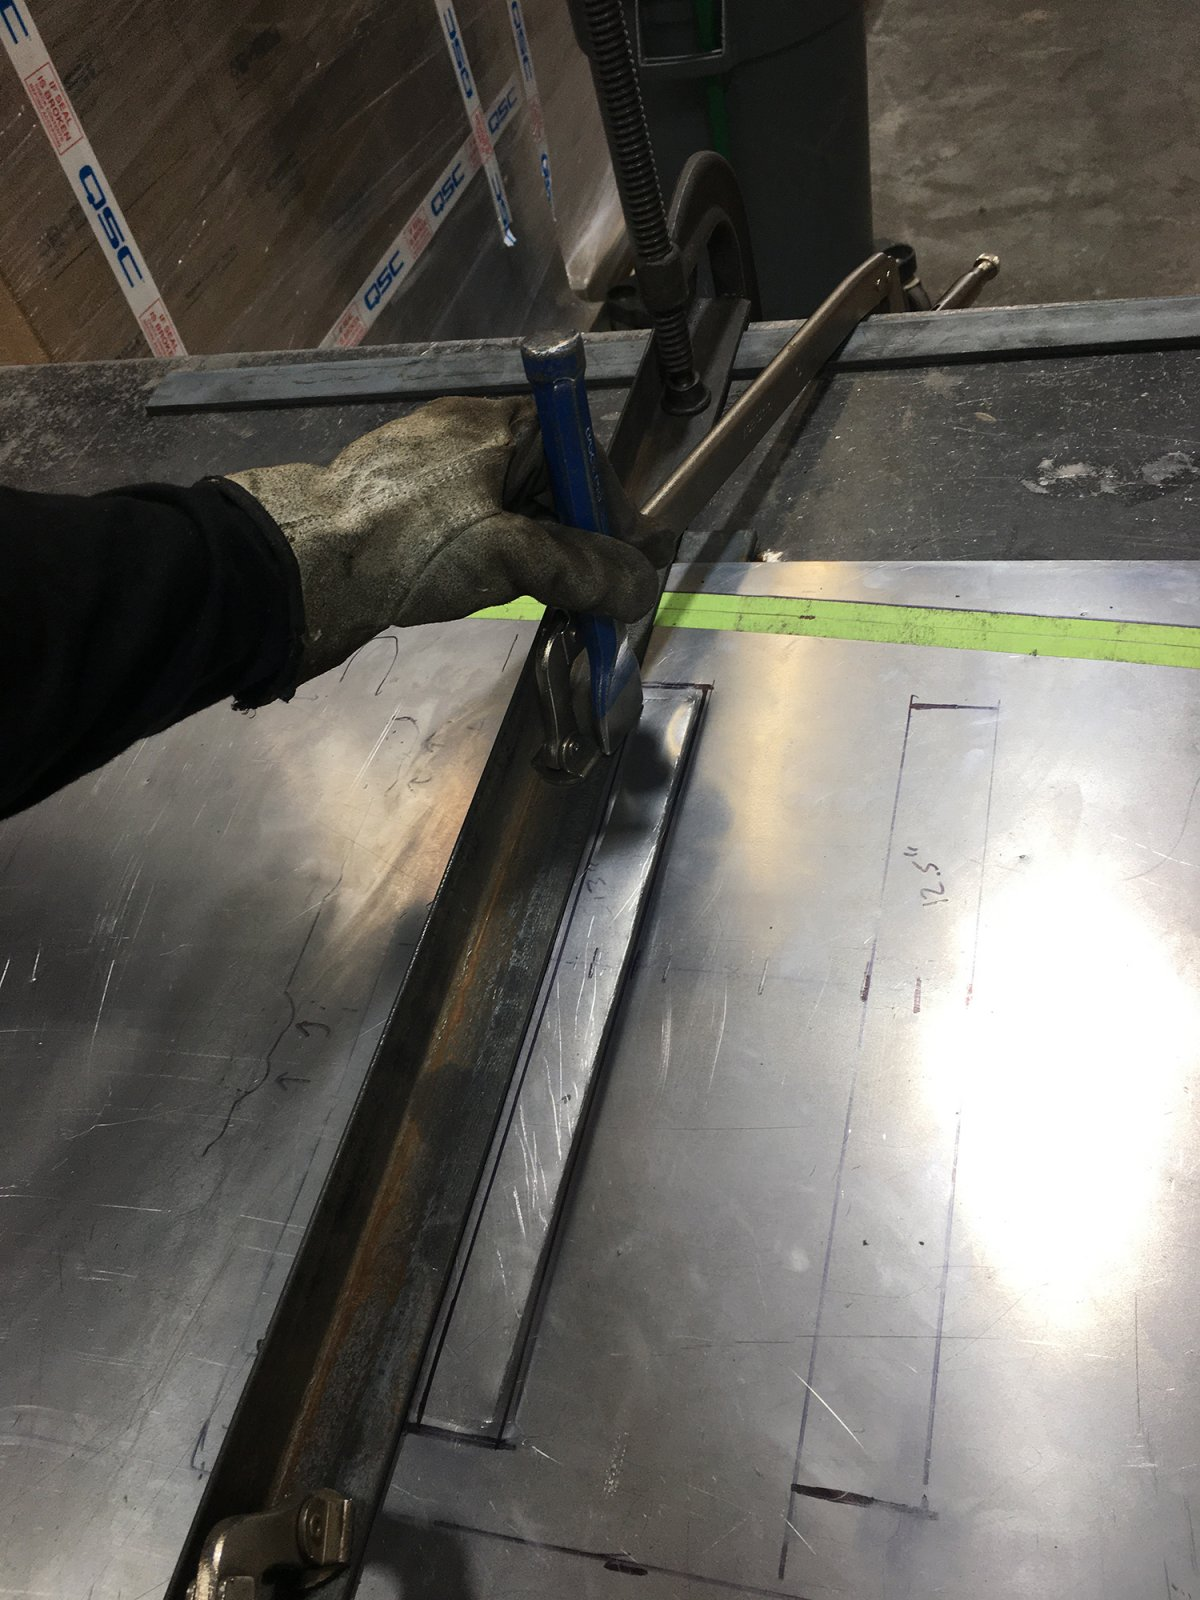 Tyler created ribs using a hammer and chisel. Ribs add rigidity and strength to an otherwise flimsy piece of sheet metal.